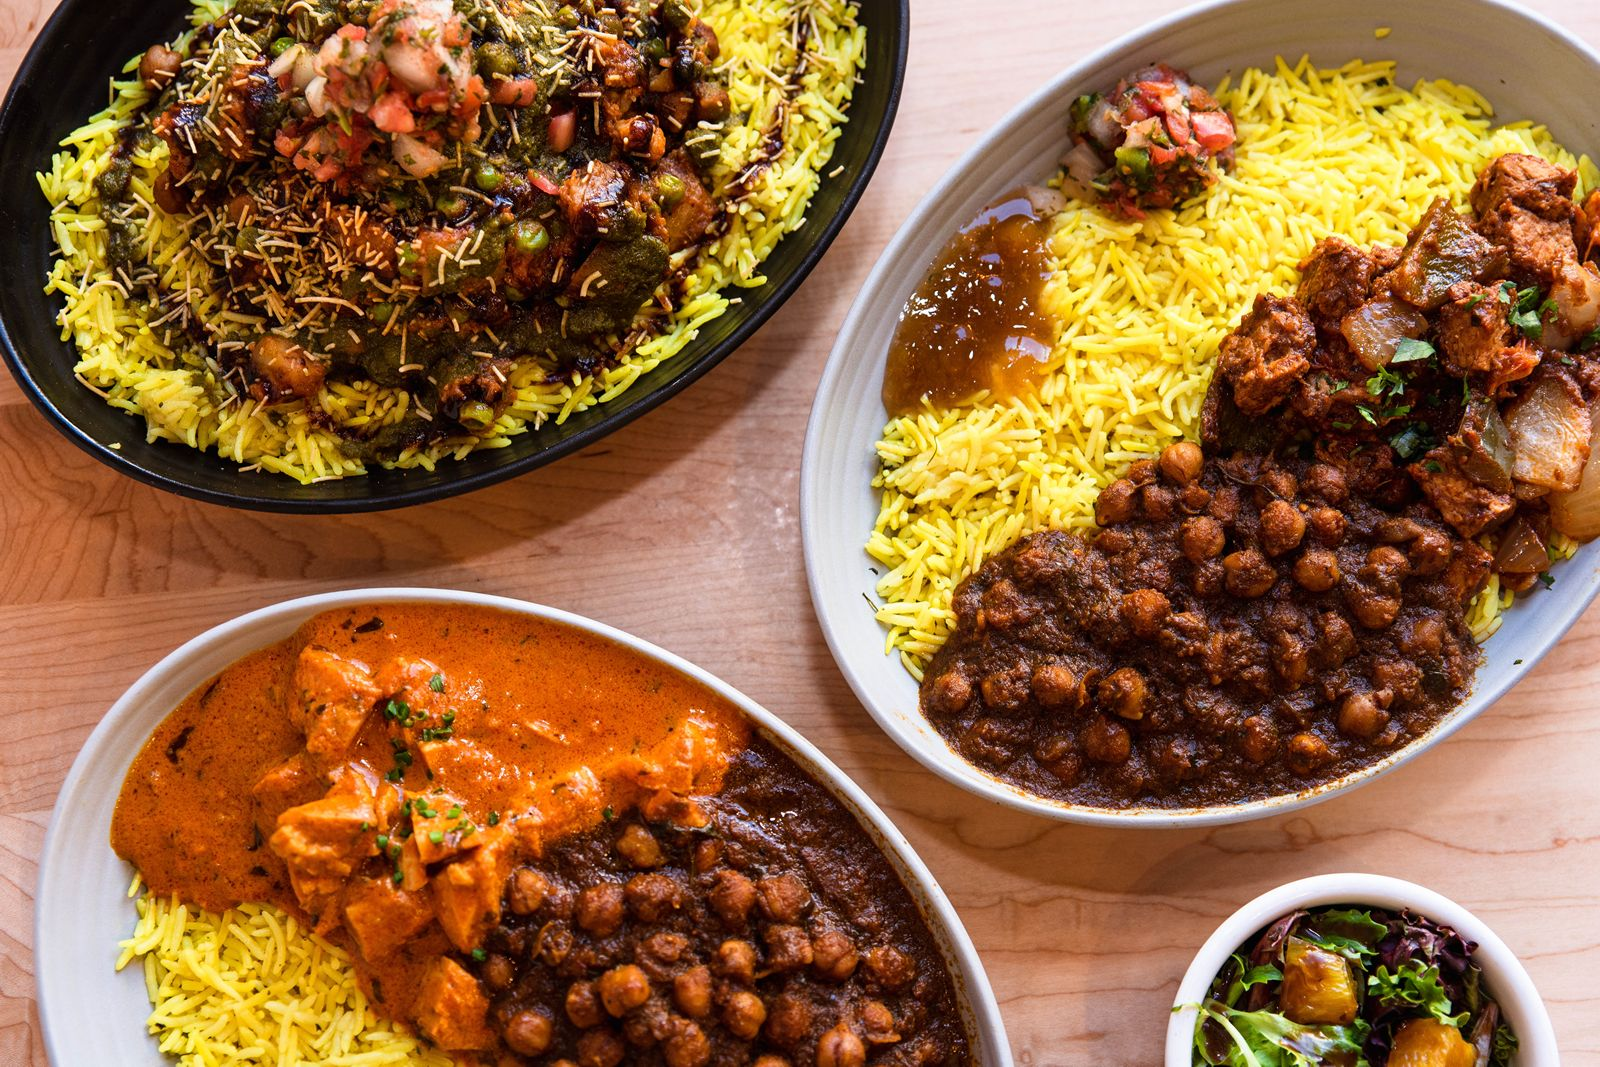 Curry Up Now has opened doors at its second location in the greater Atlanta area, marking its fifth restaurant opening in 2020.